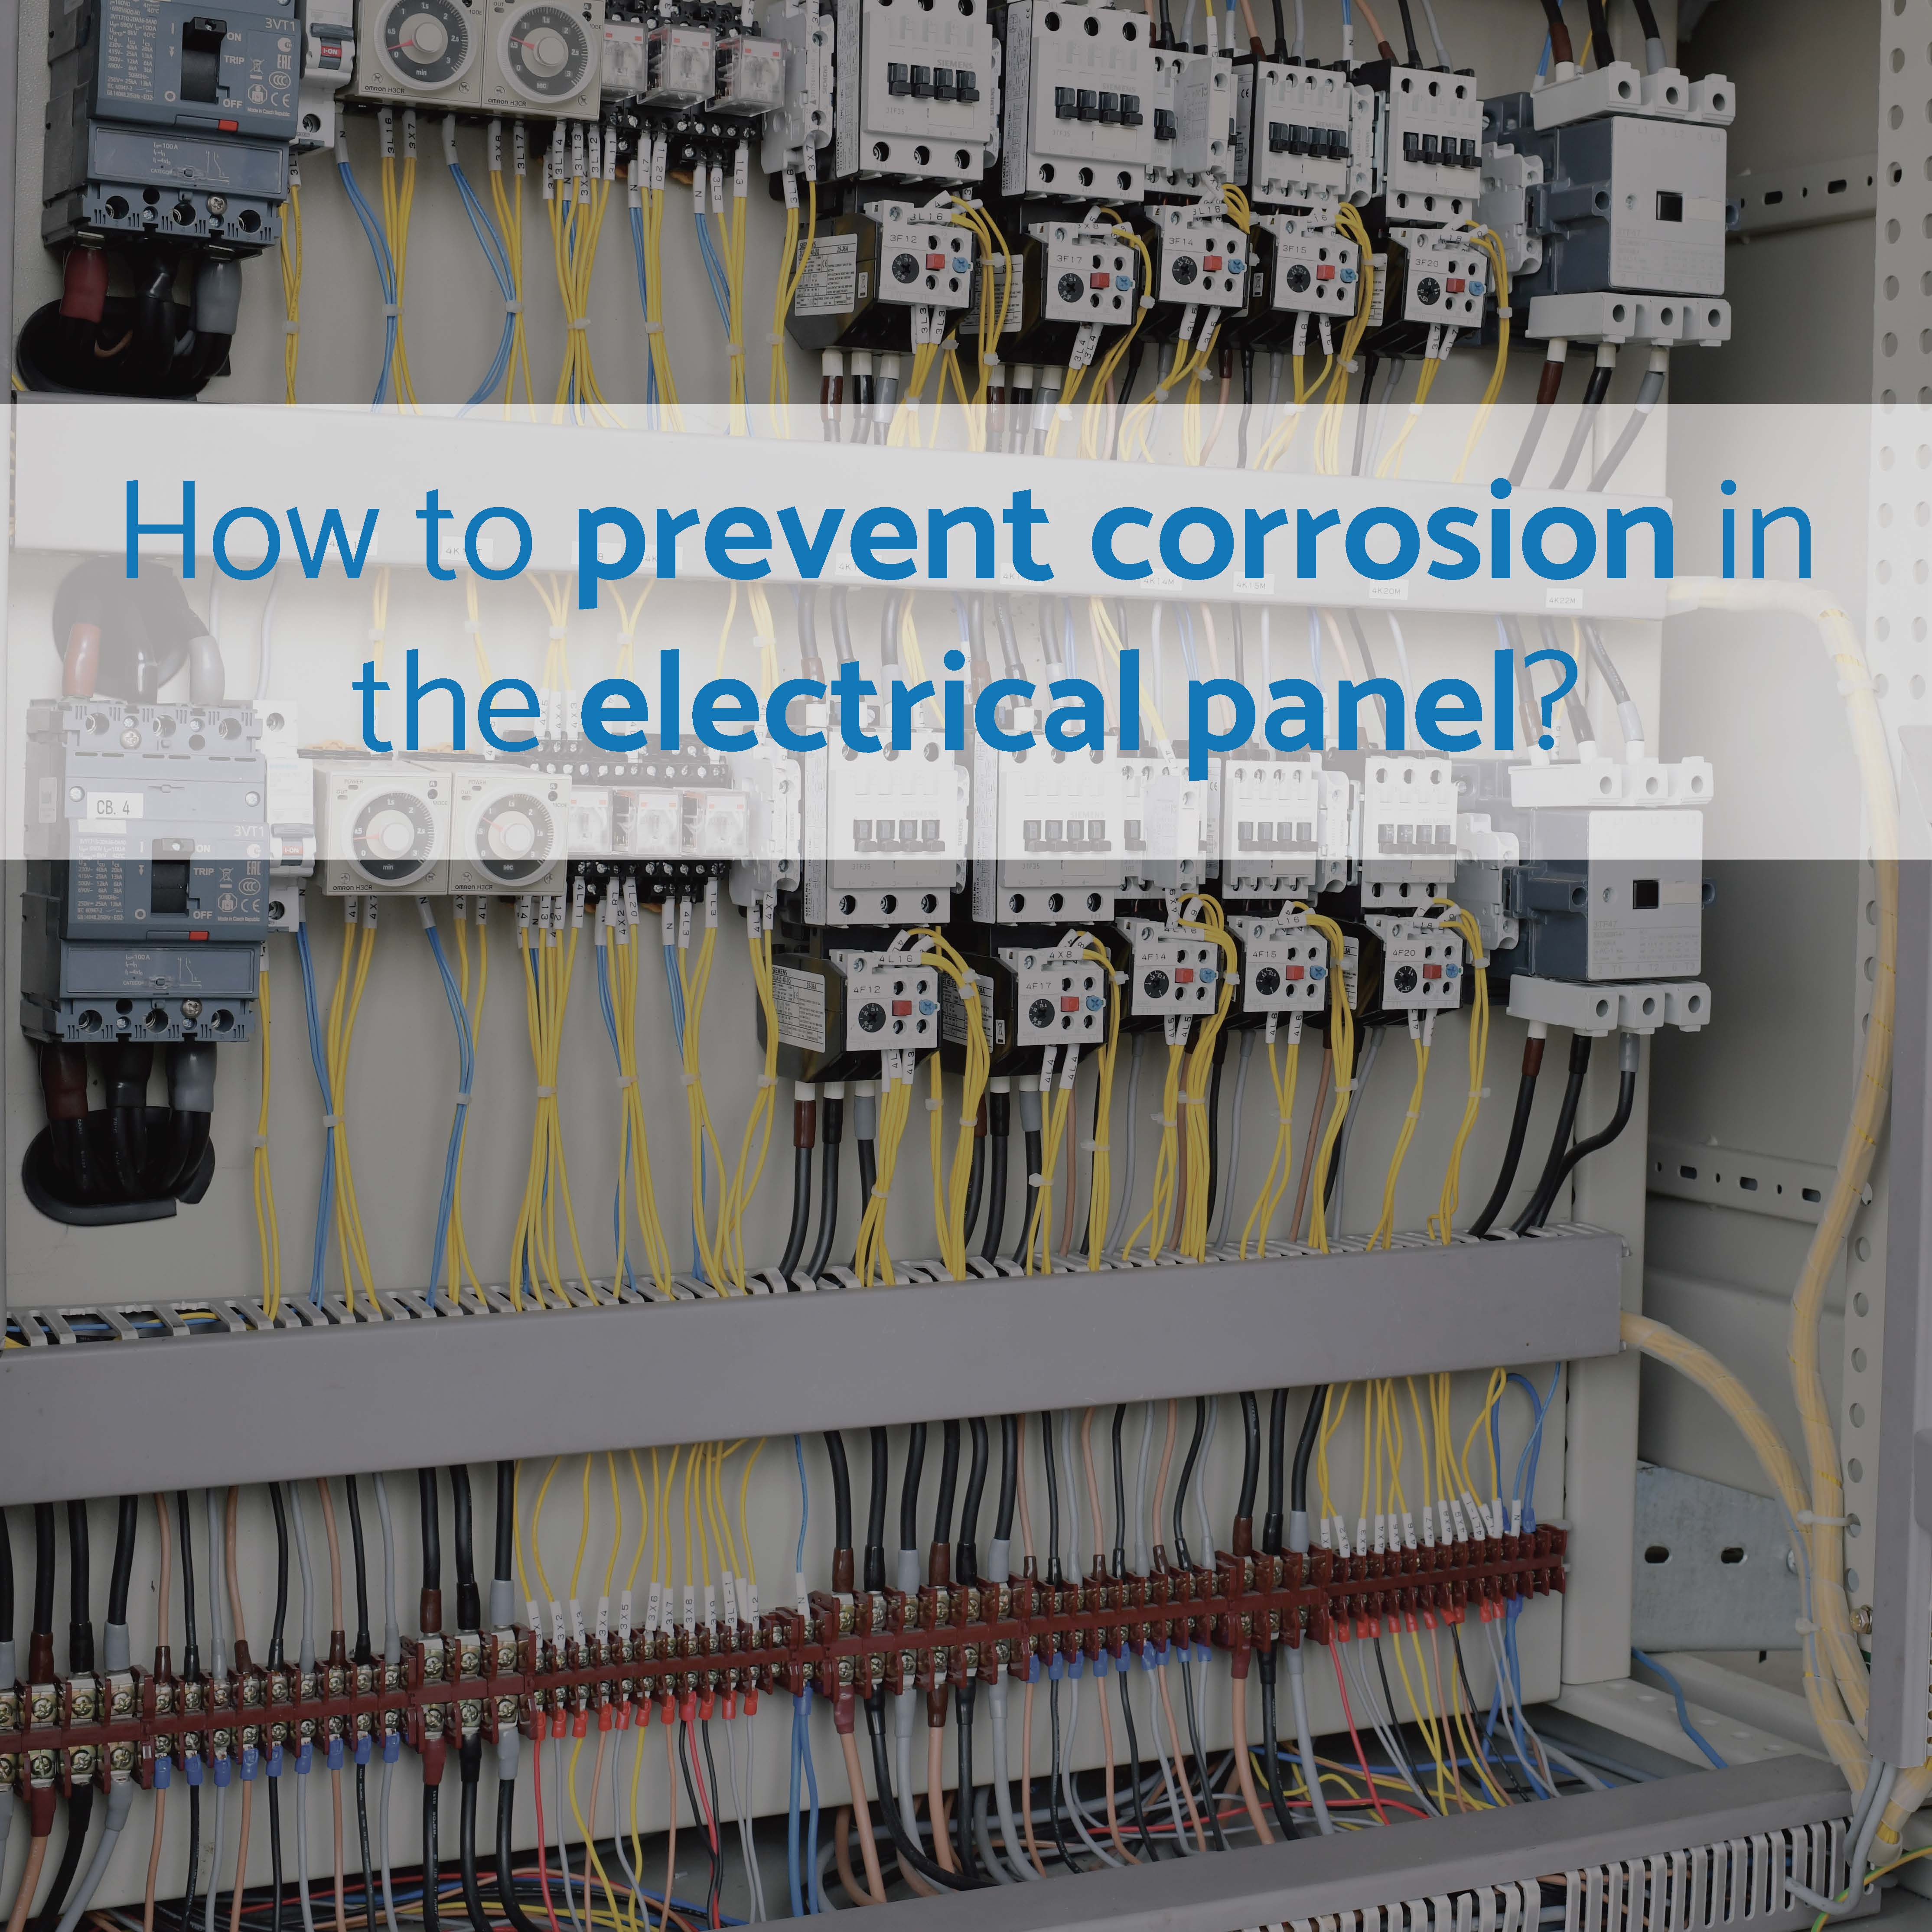 How to prevent corrosion in the electrical panel?